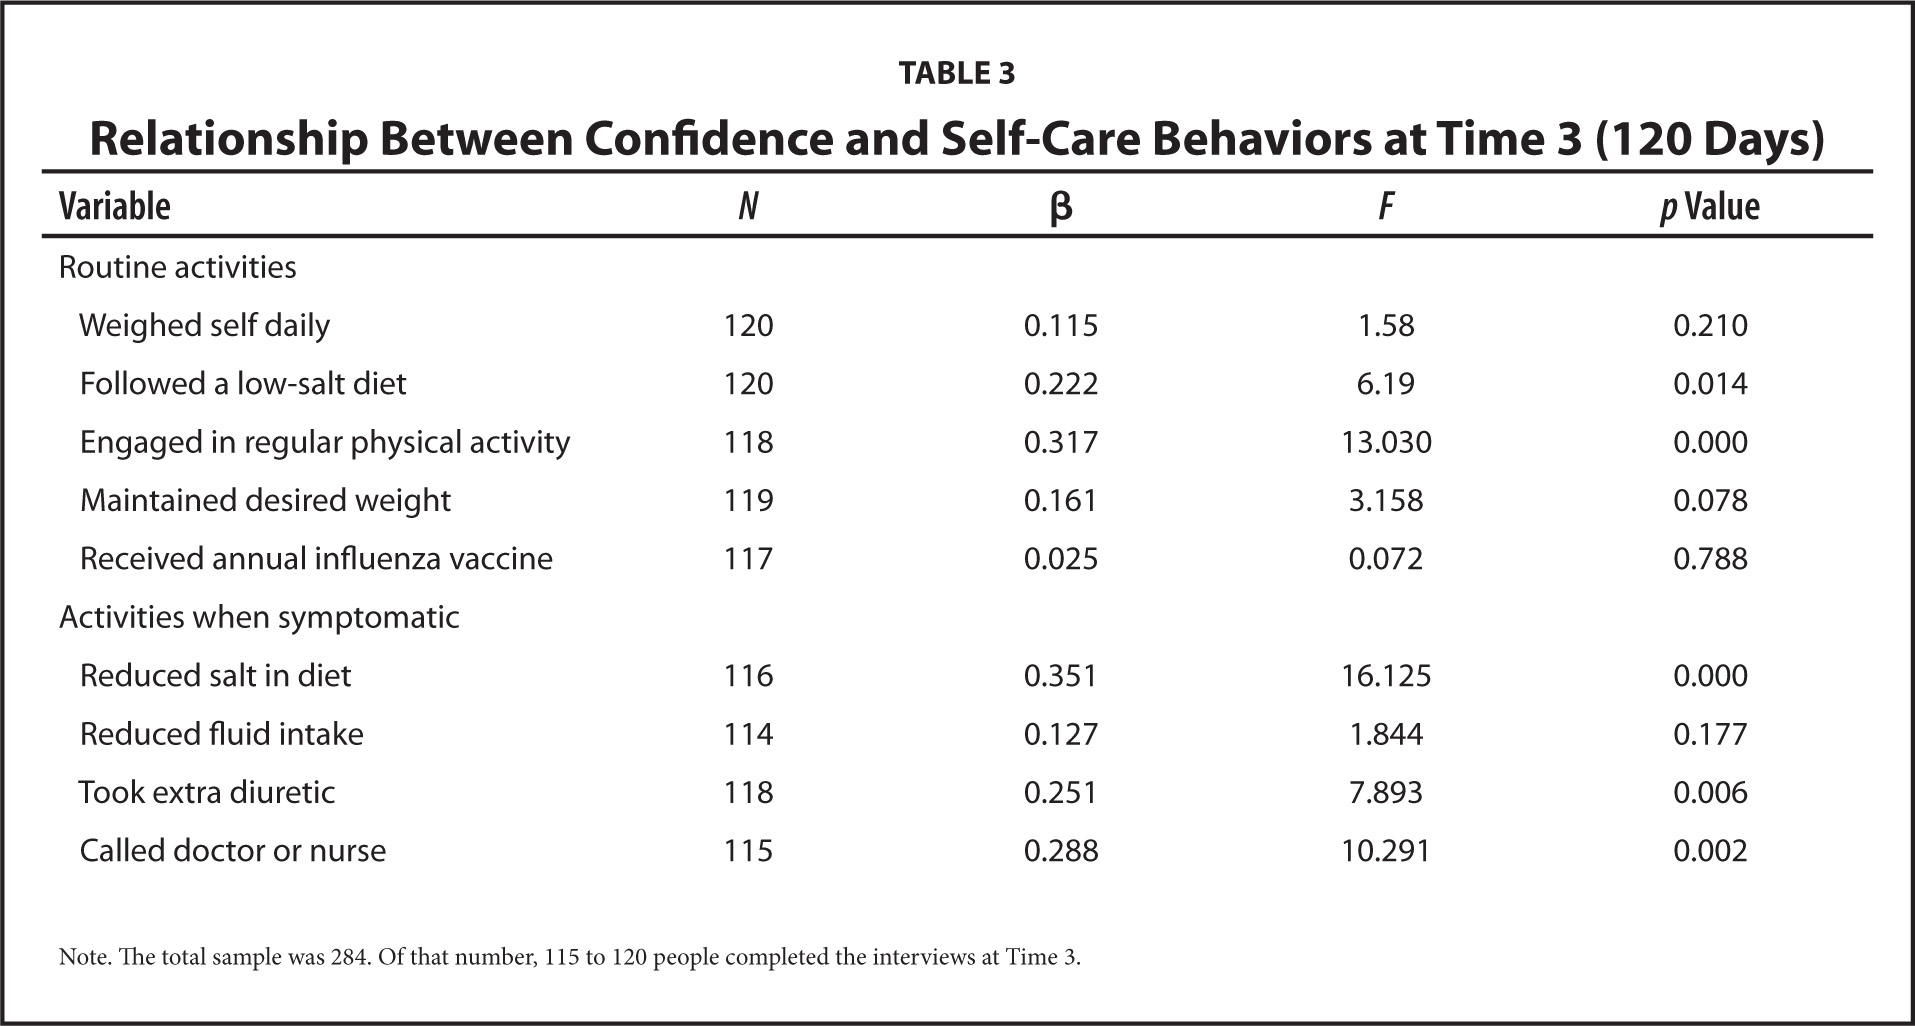 Relationship Between Confidence and Self-Care Behaviors at Time 3 (120 Days)